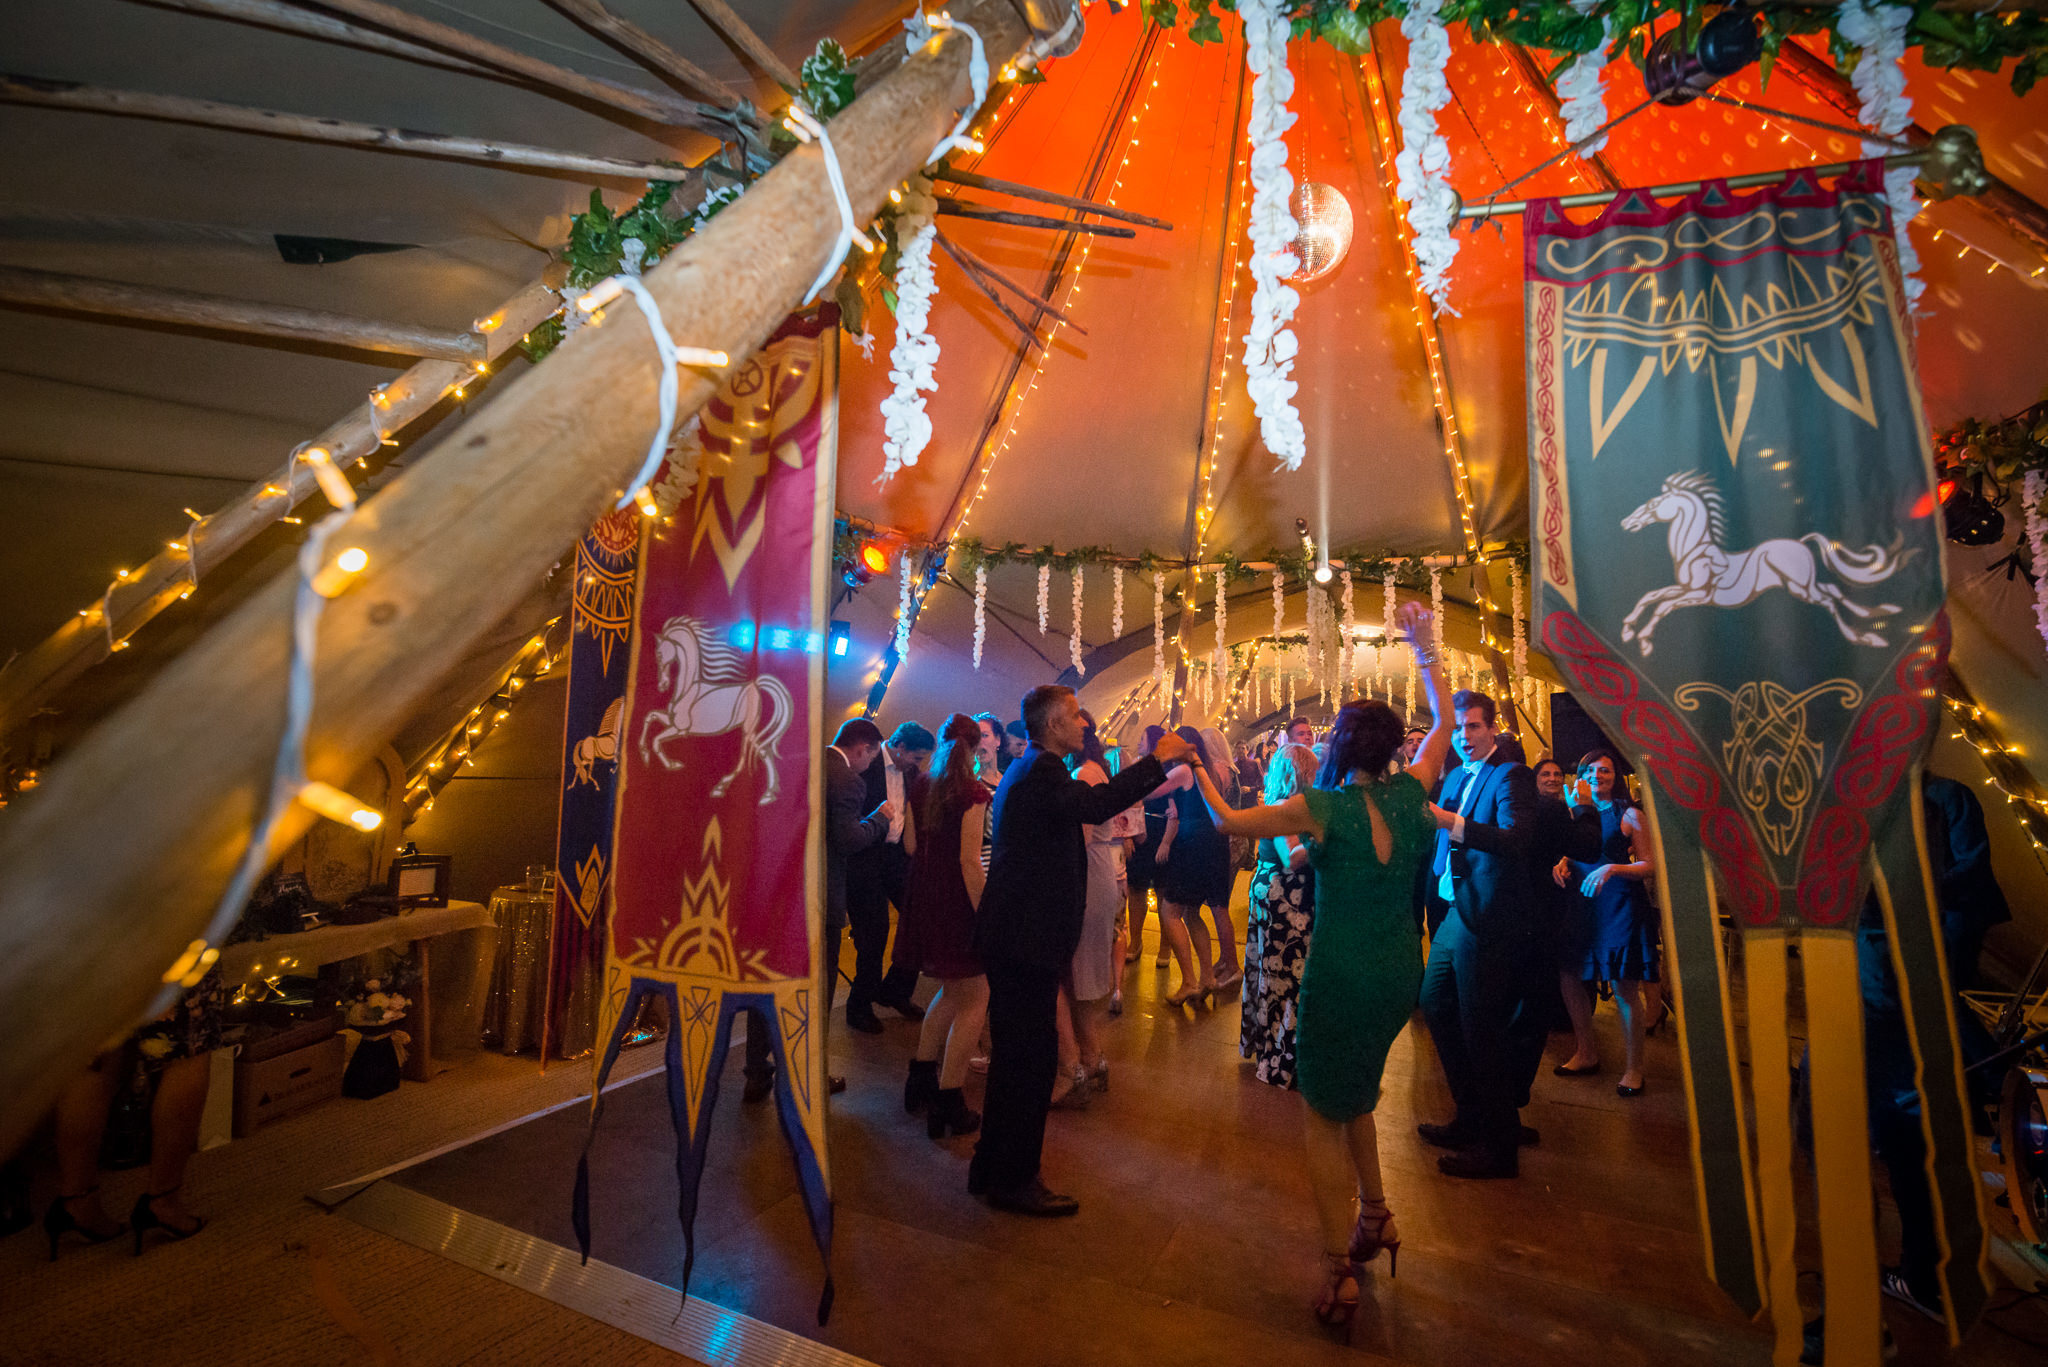 Guests dancing in at the tipi wedding